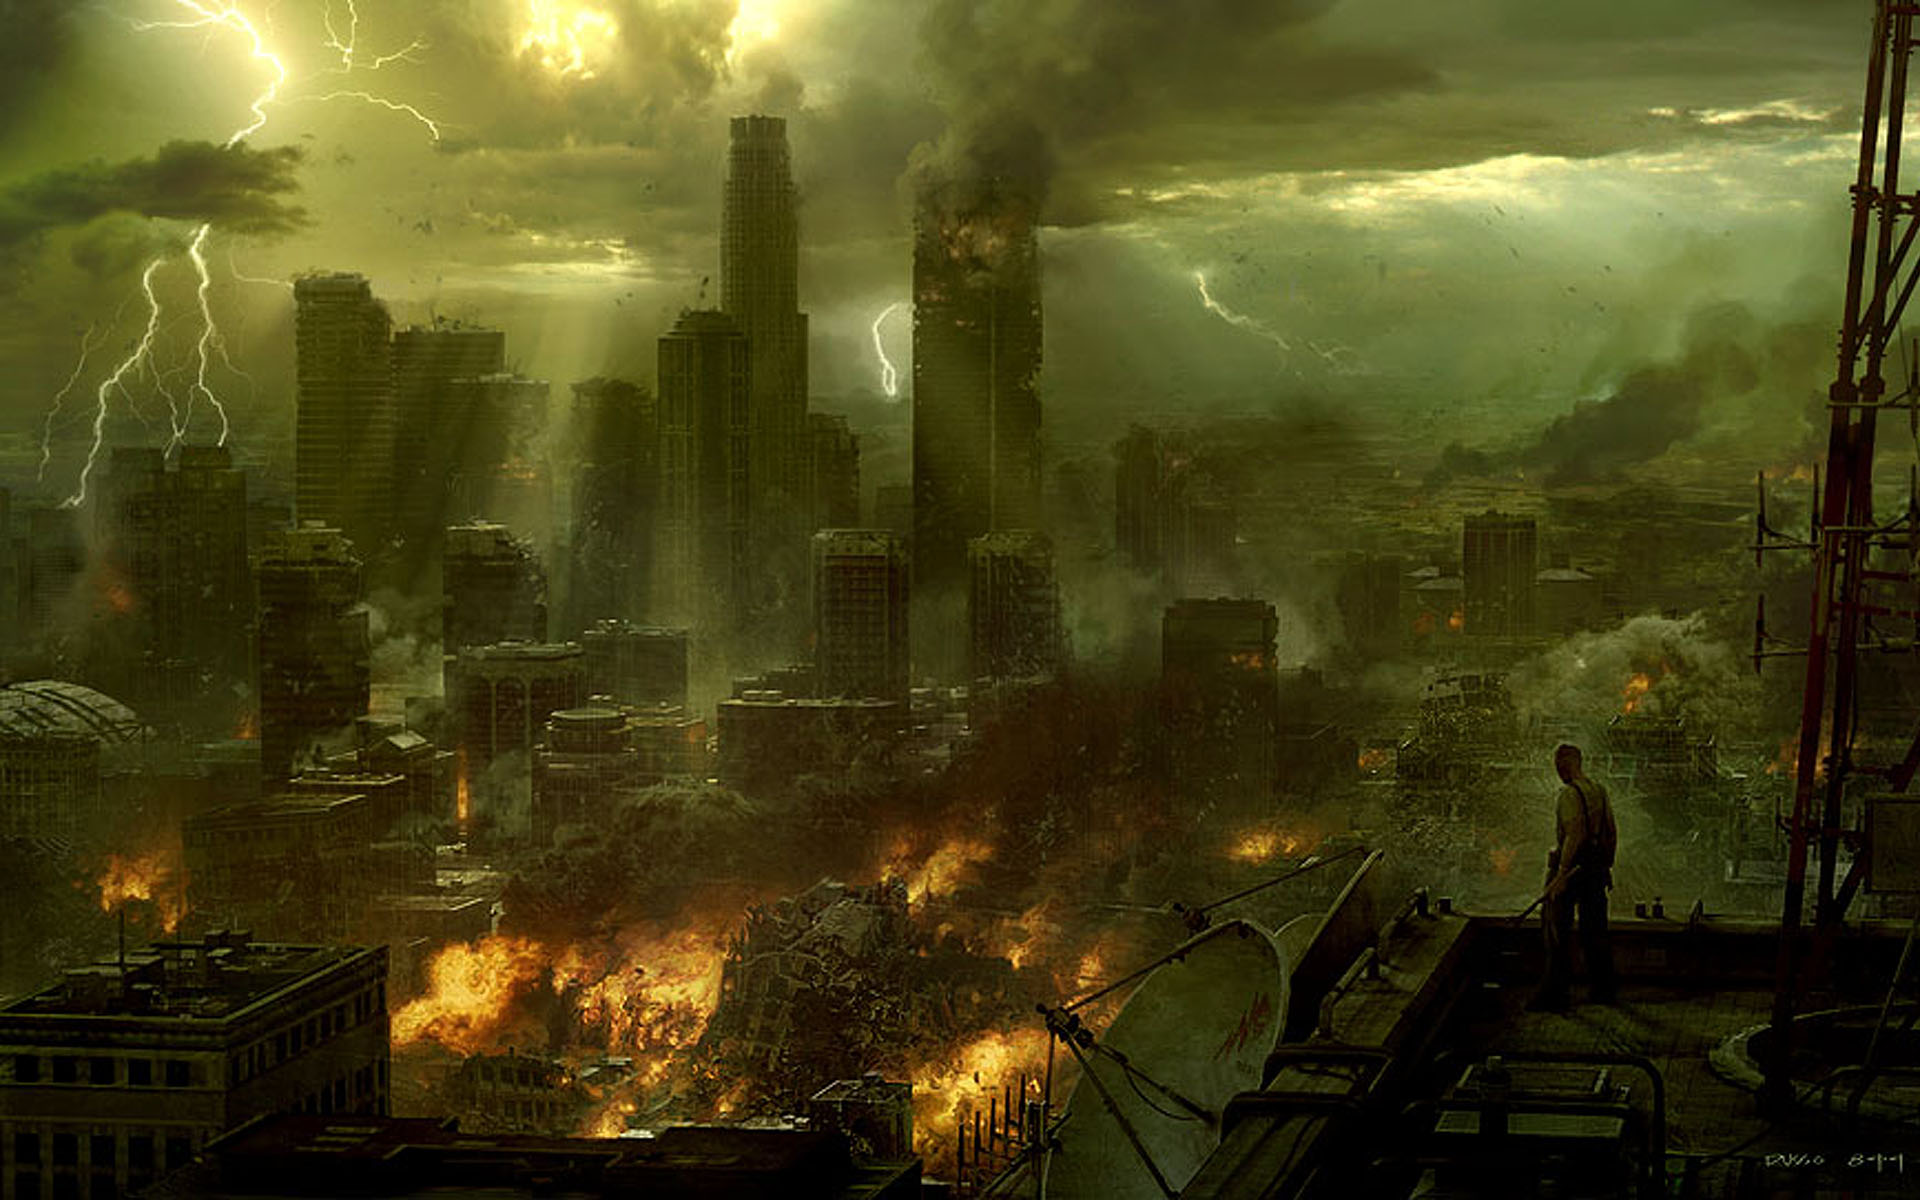 the end - doomsday destruction Wallpaper (30971970) - Fanpop fanclubs